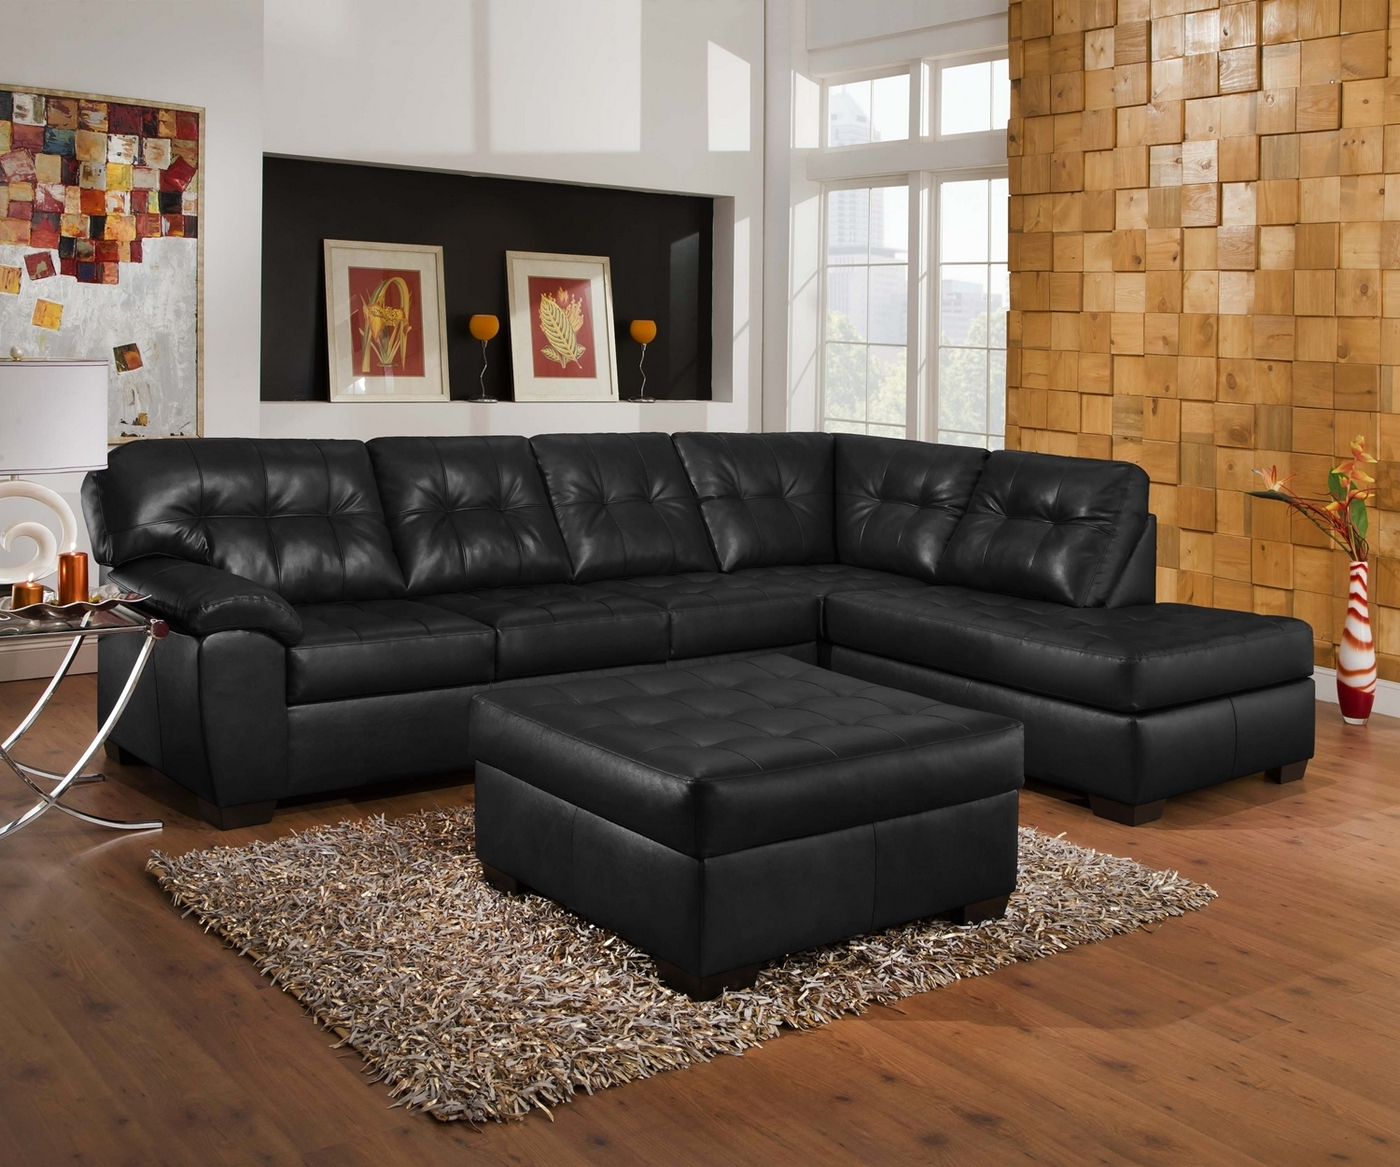 Recent 2pc Connel Modern Chaise Sectional Sofas Black With Regard To Soho Contemporary Onyx Leather Sectional Sofa W/ Left Chaise (View 10 of 20)